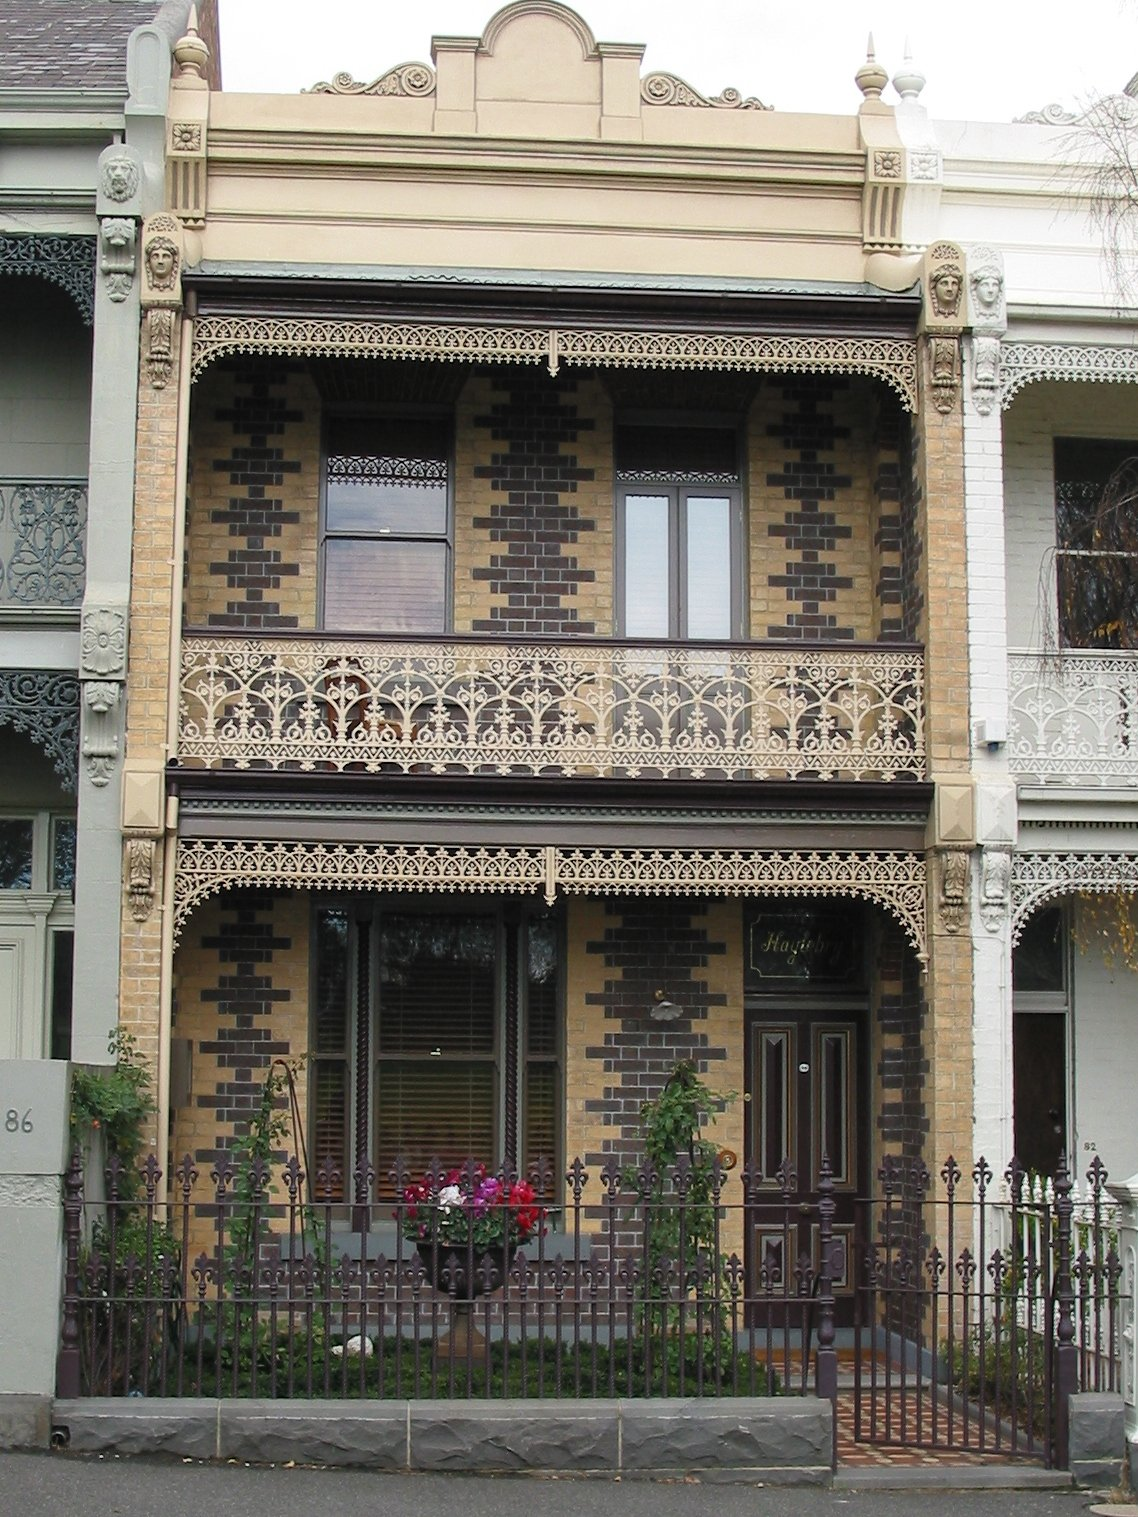 Cast iron fence with balustrades